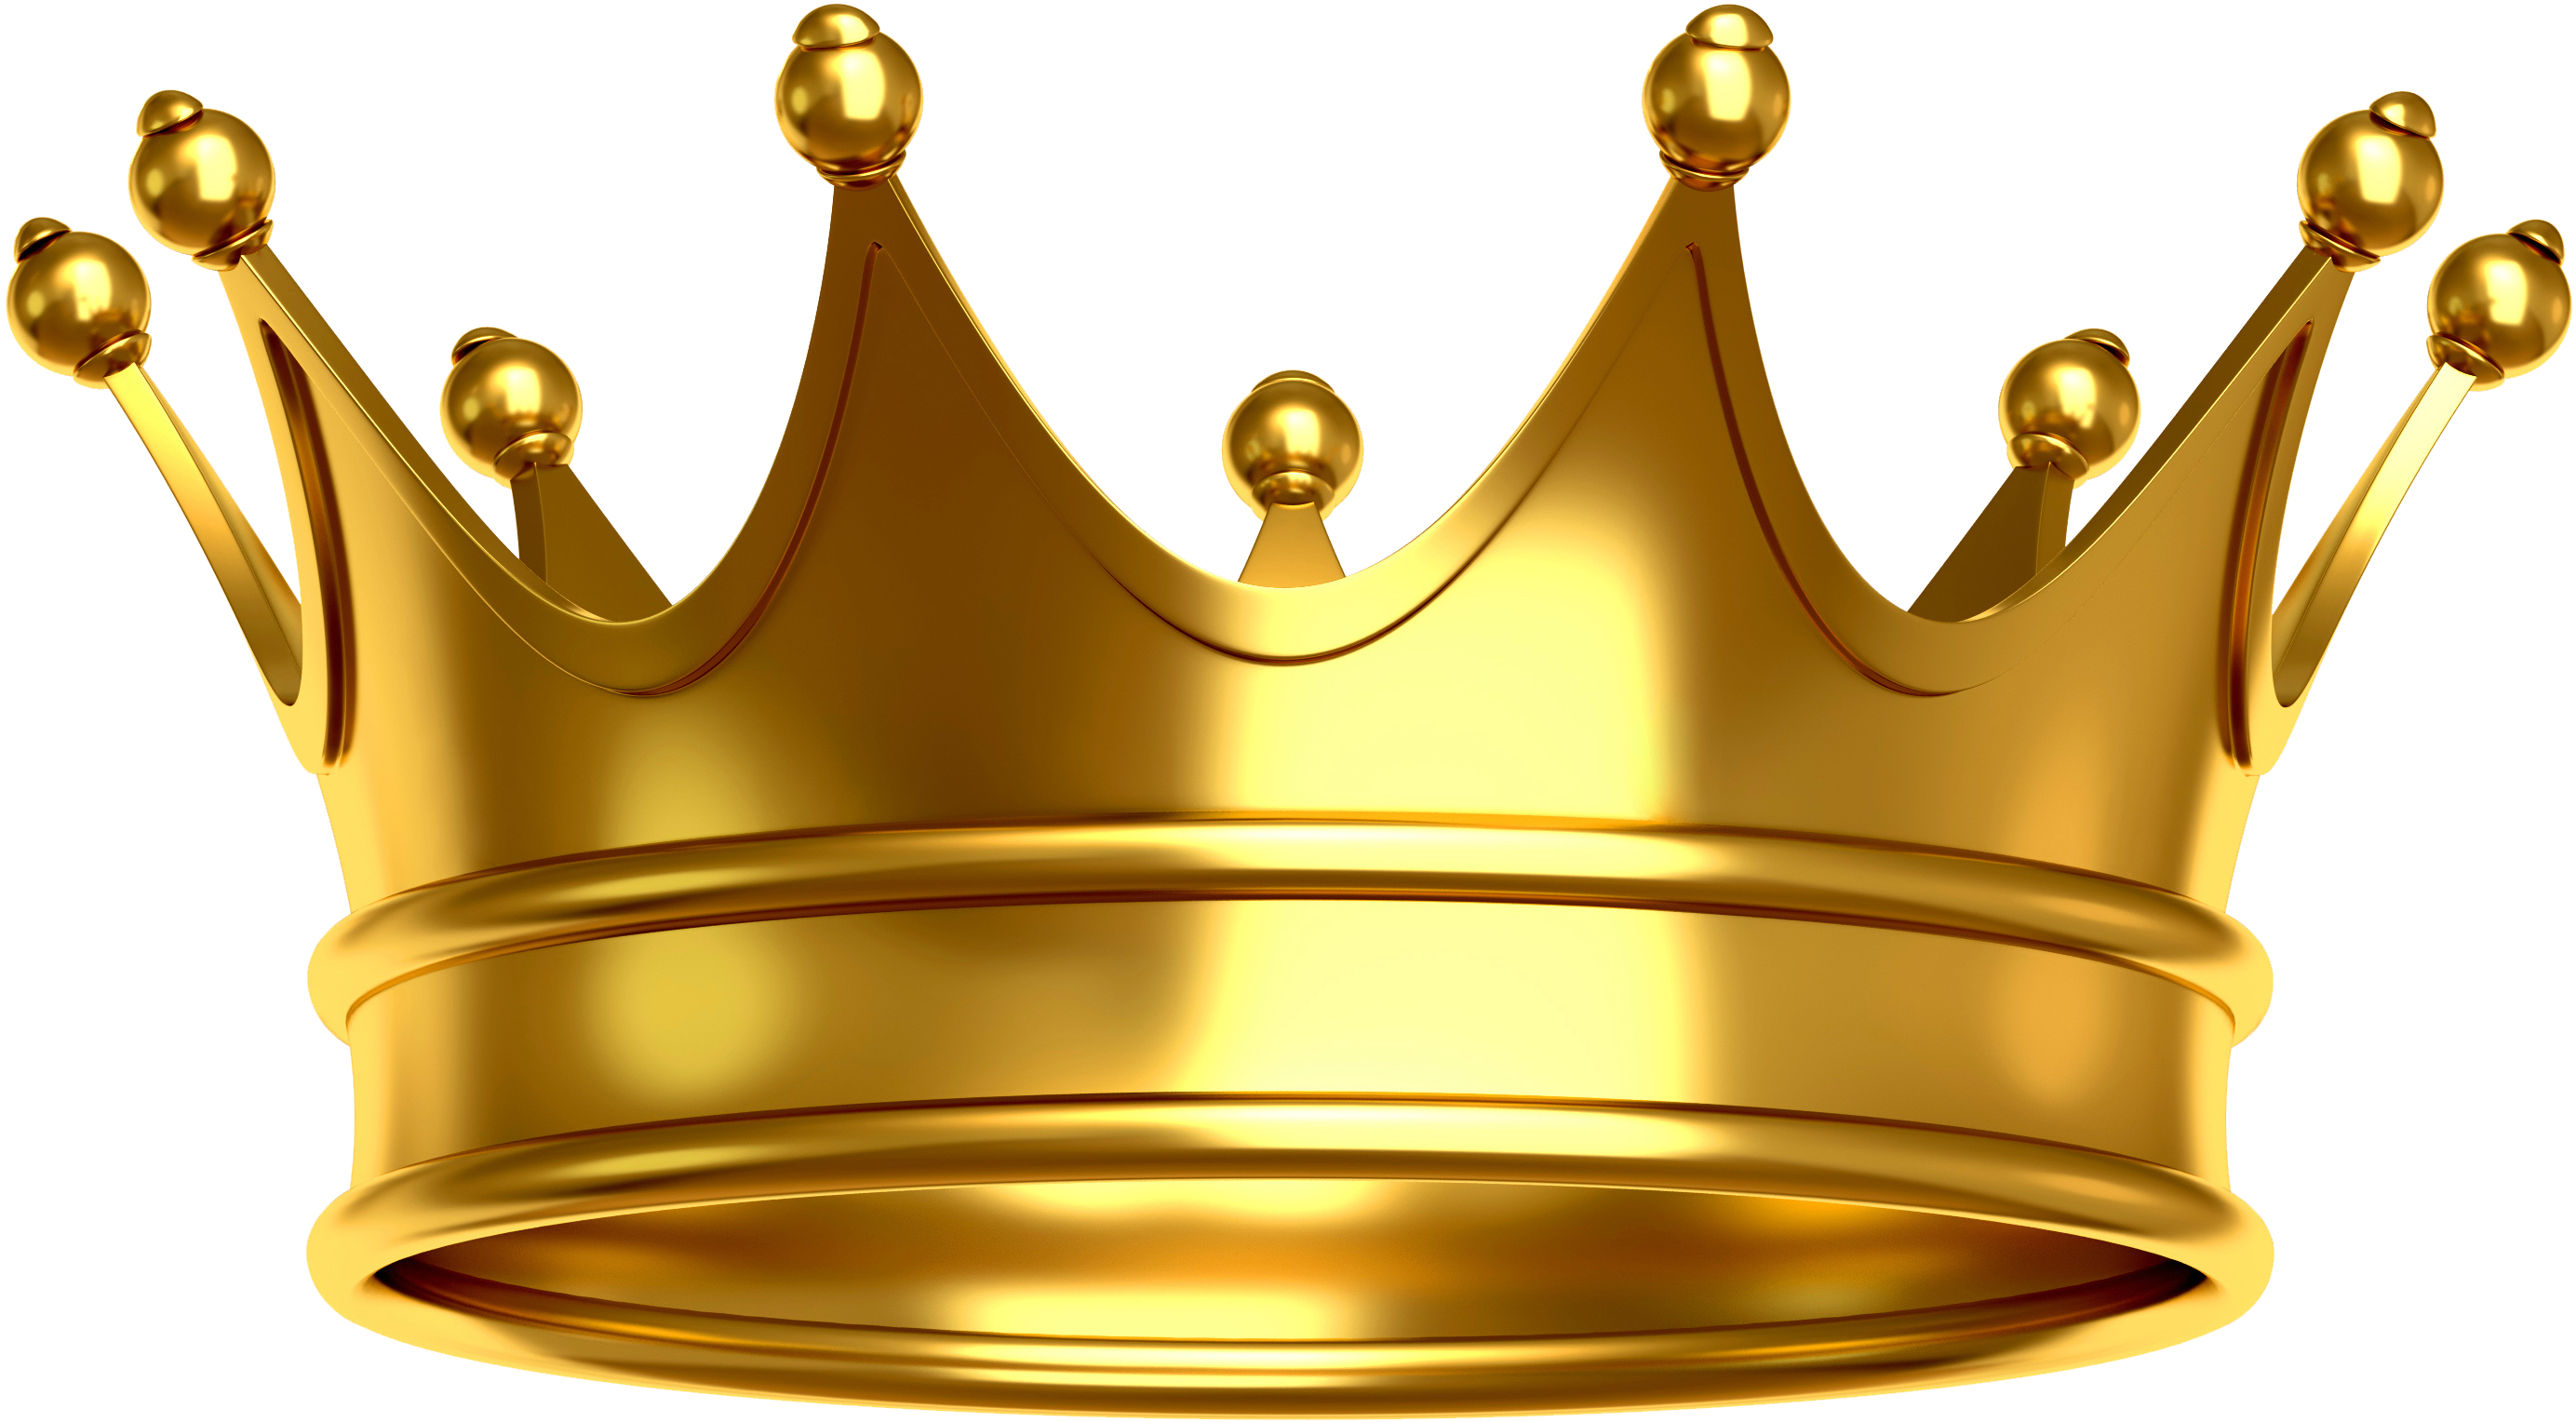 Burger king crown clipart jpg King PNG HD Transparent King HD.PNG Images. | PlusPNG jpg